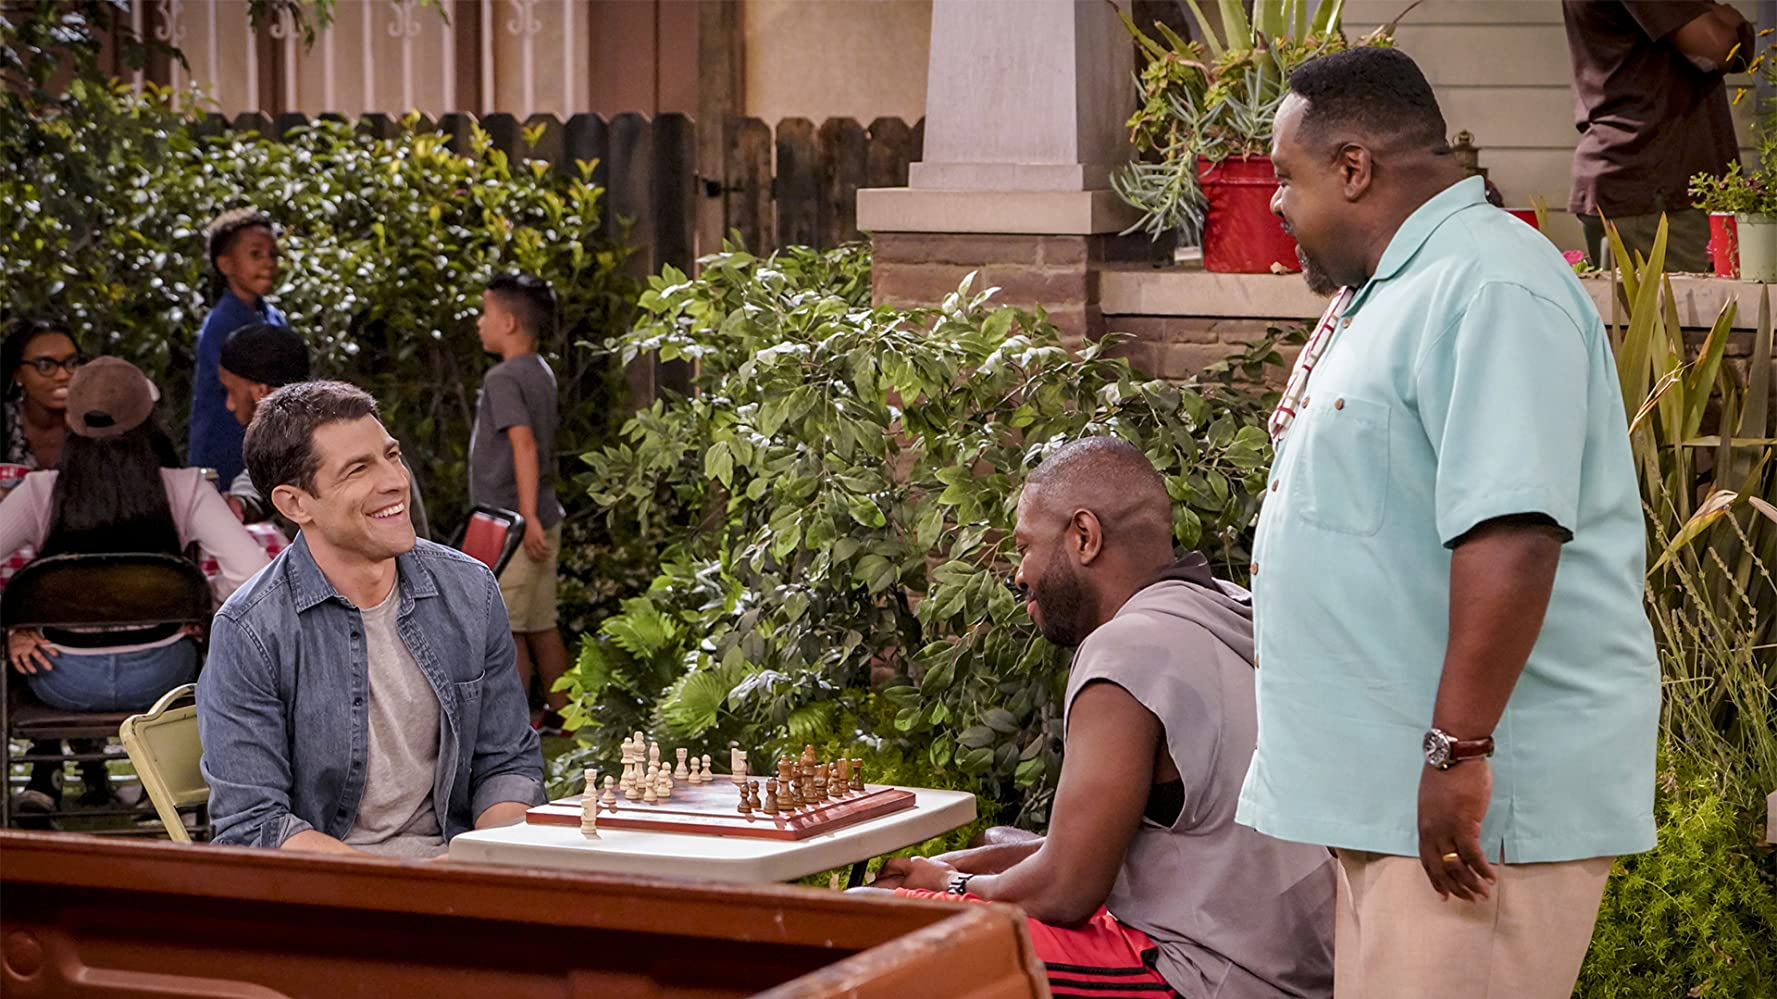 Cedric the Entertainer, Max Greenfield, and Sheaun McKinney in The Neighborhood (2018)